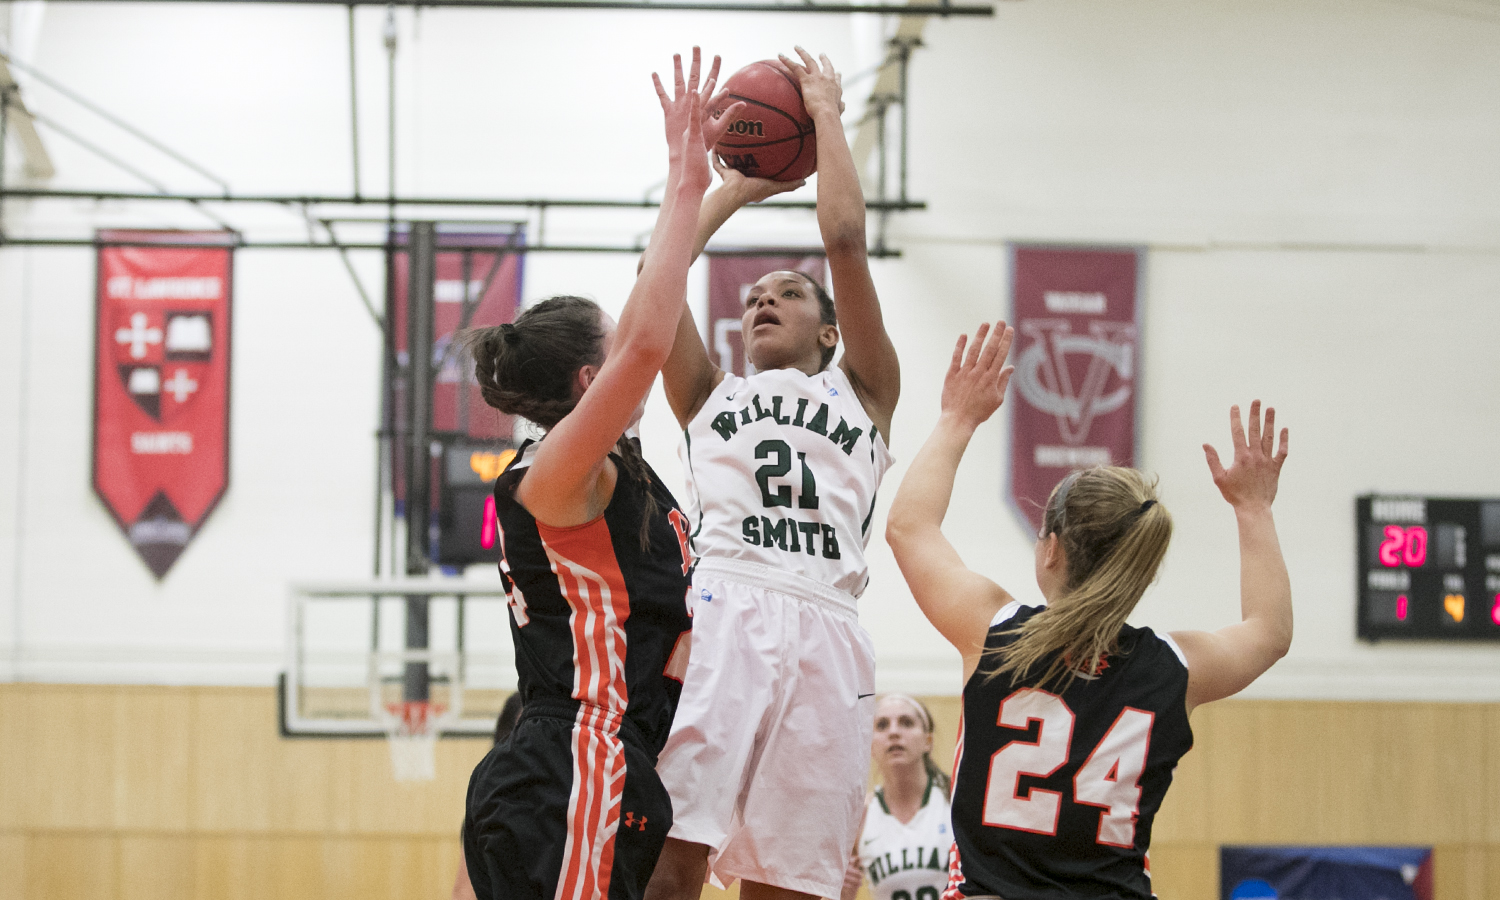 William Smith sophomore Mia Morrison had a double-double on 10 points and a game-high 13 rebounds against RIT Wendnesday nights Liberty League game.